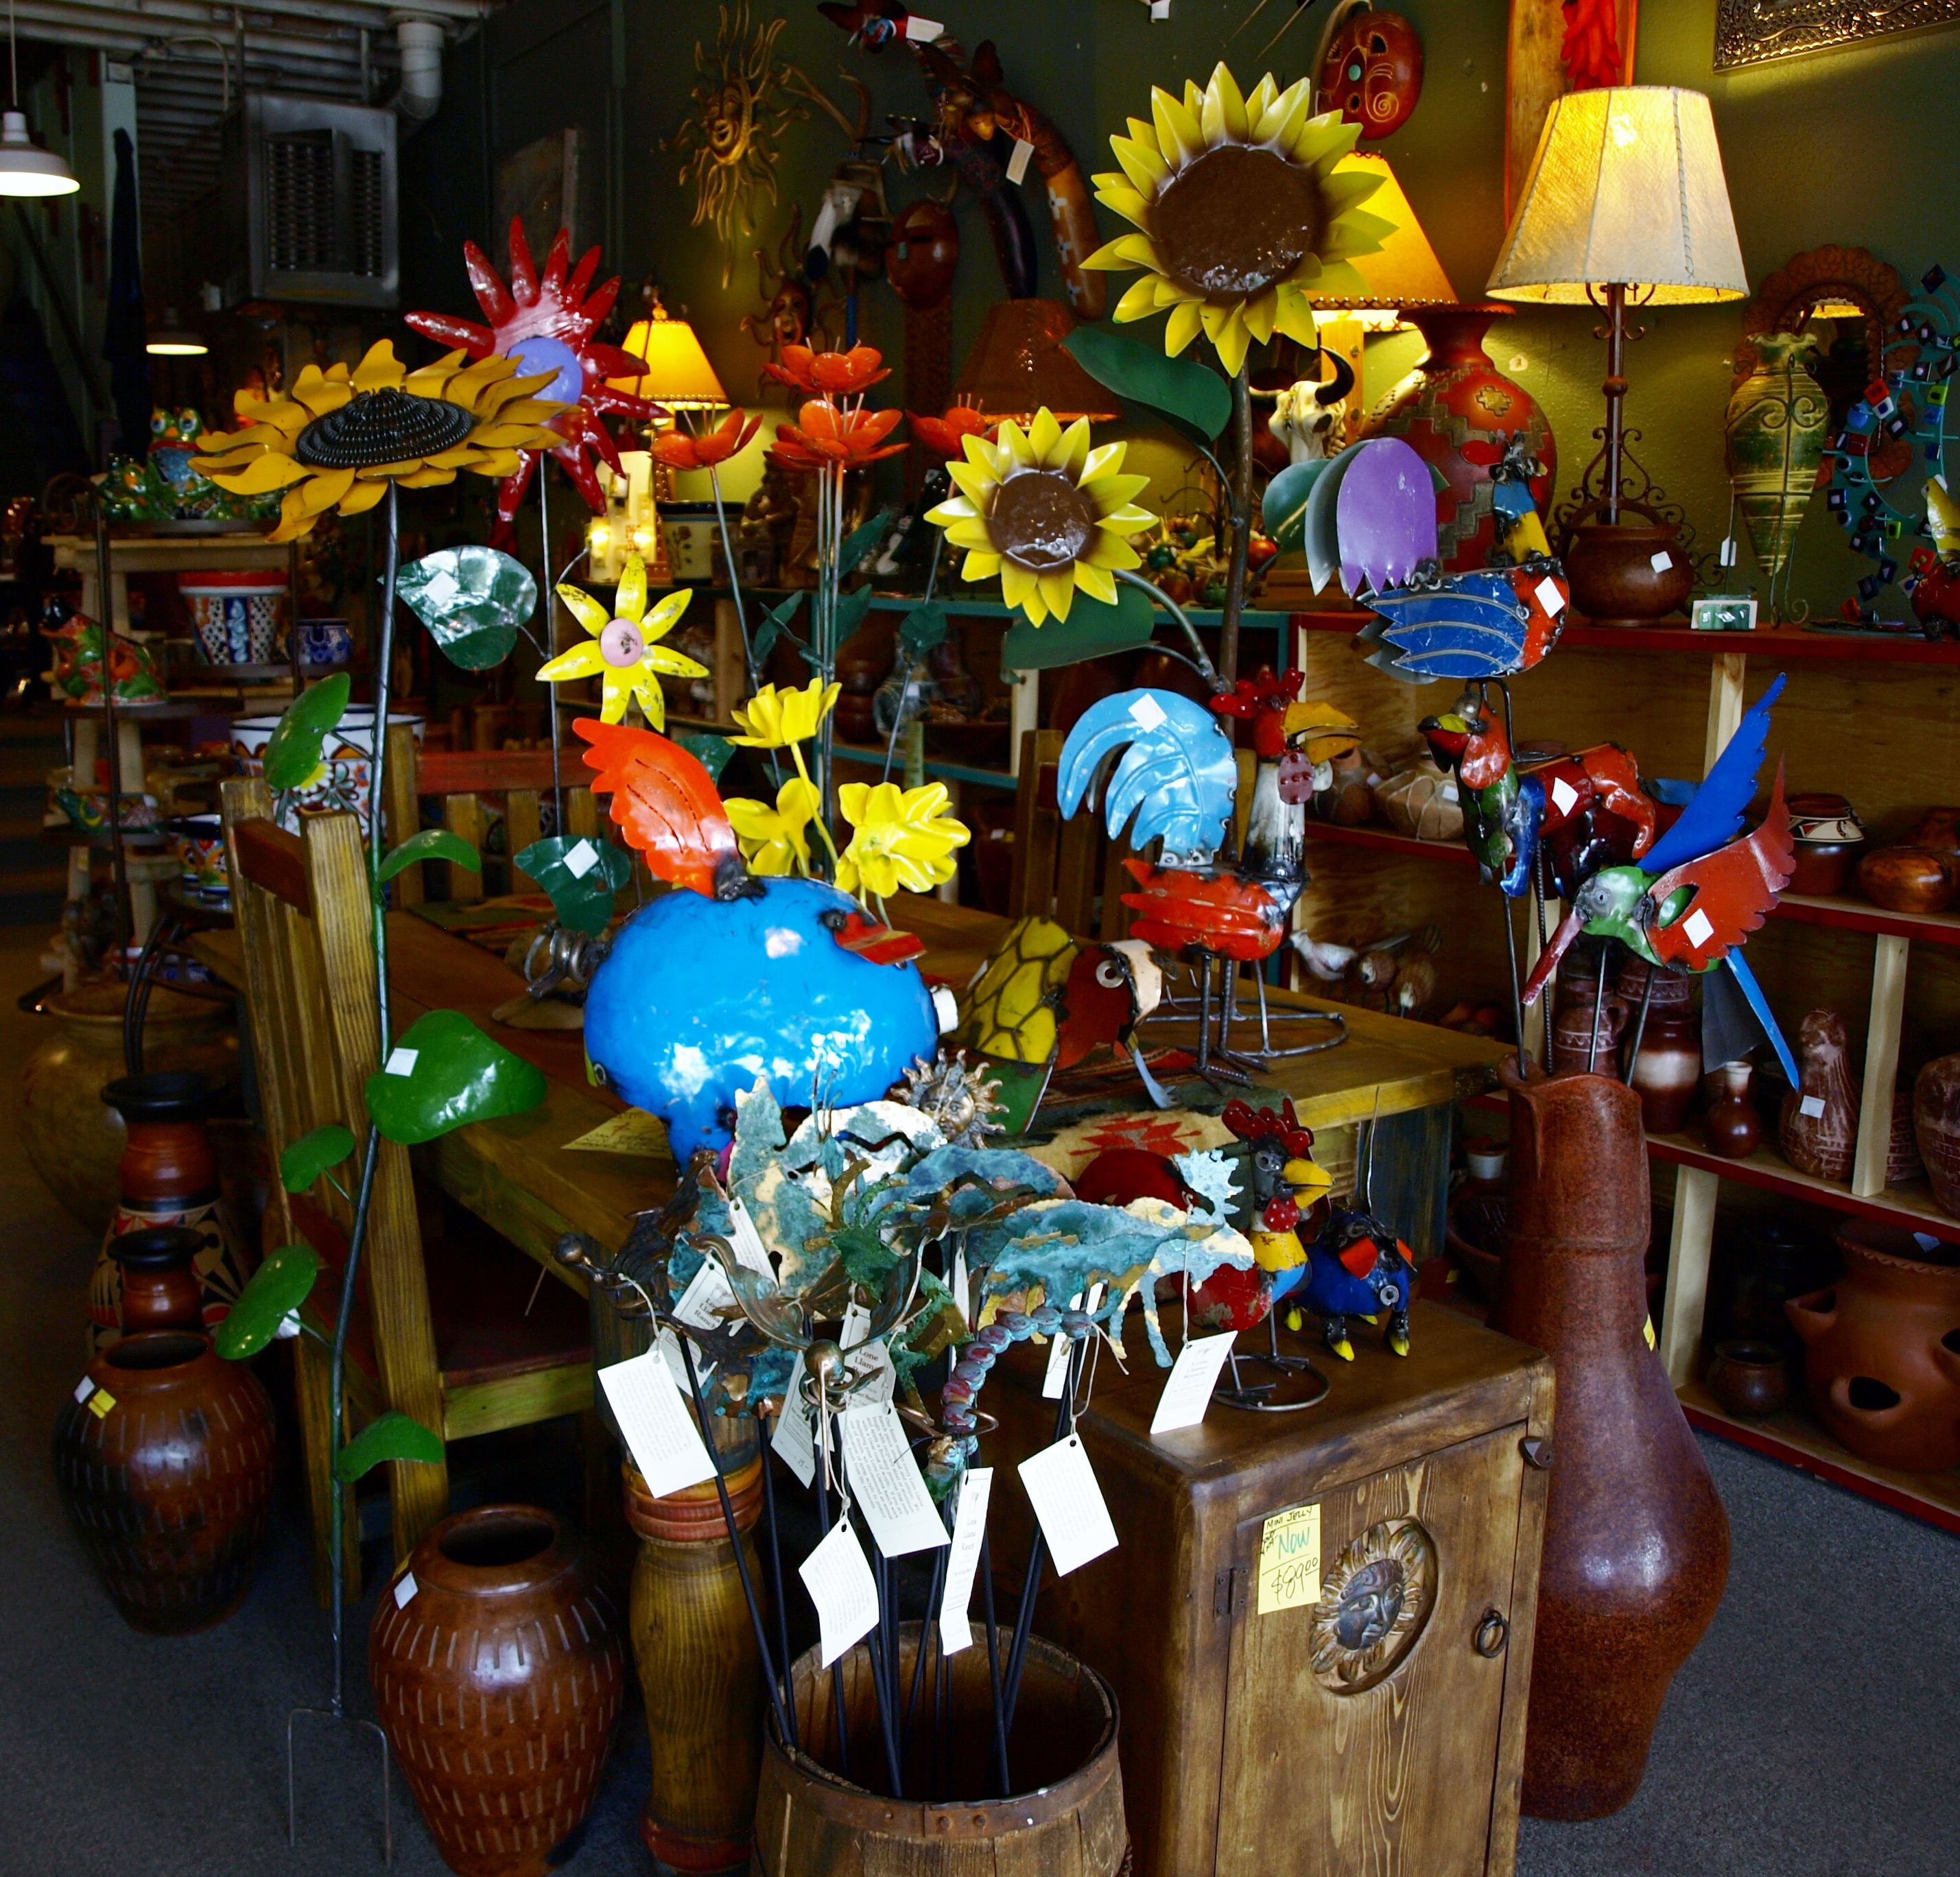 Roses In Garden: Dress Up The Garden With These Cool Yard Items. Pueblo